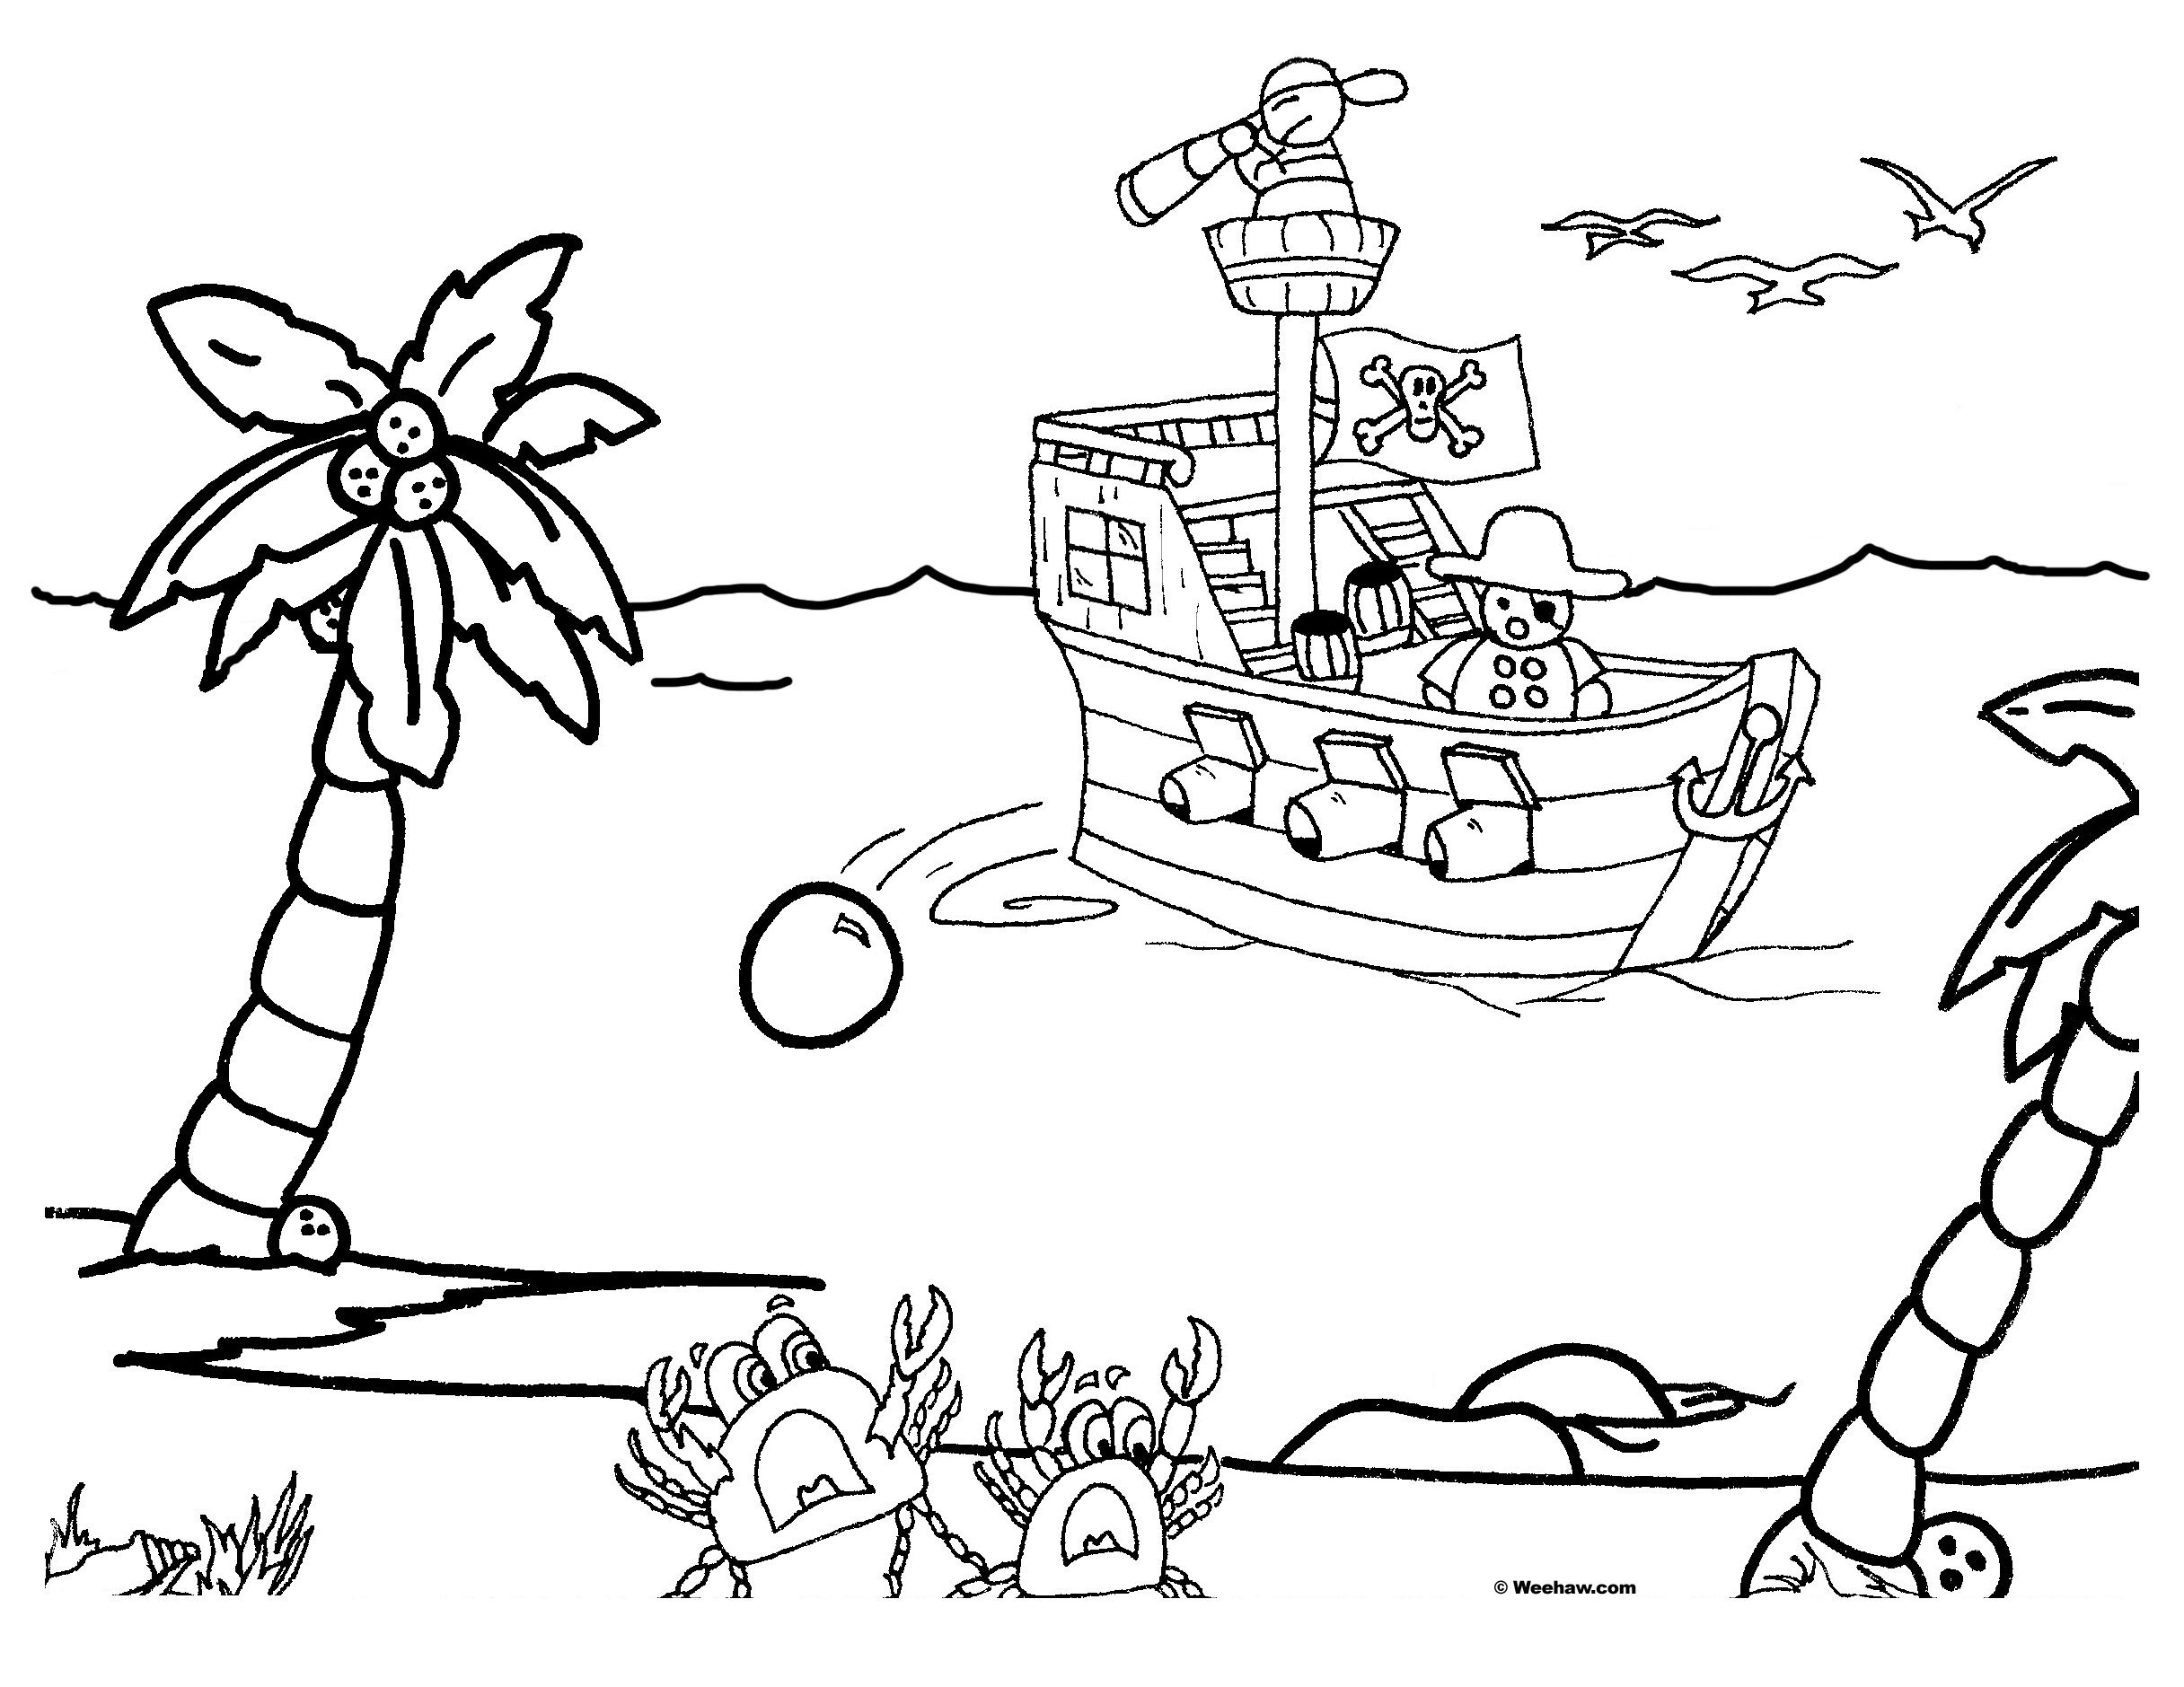 Coloring Pages Pirate coloring pages, Coloring pages for